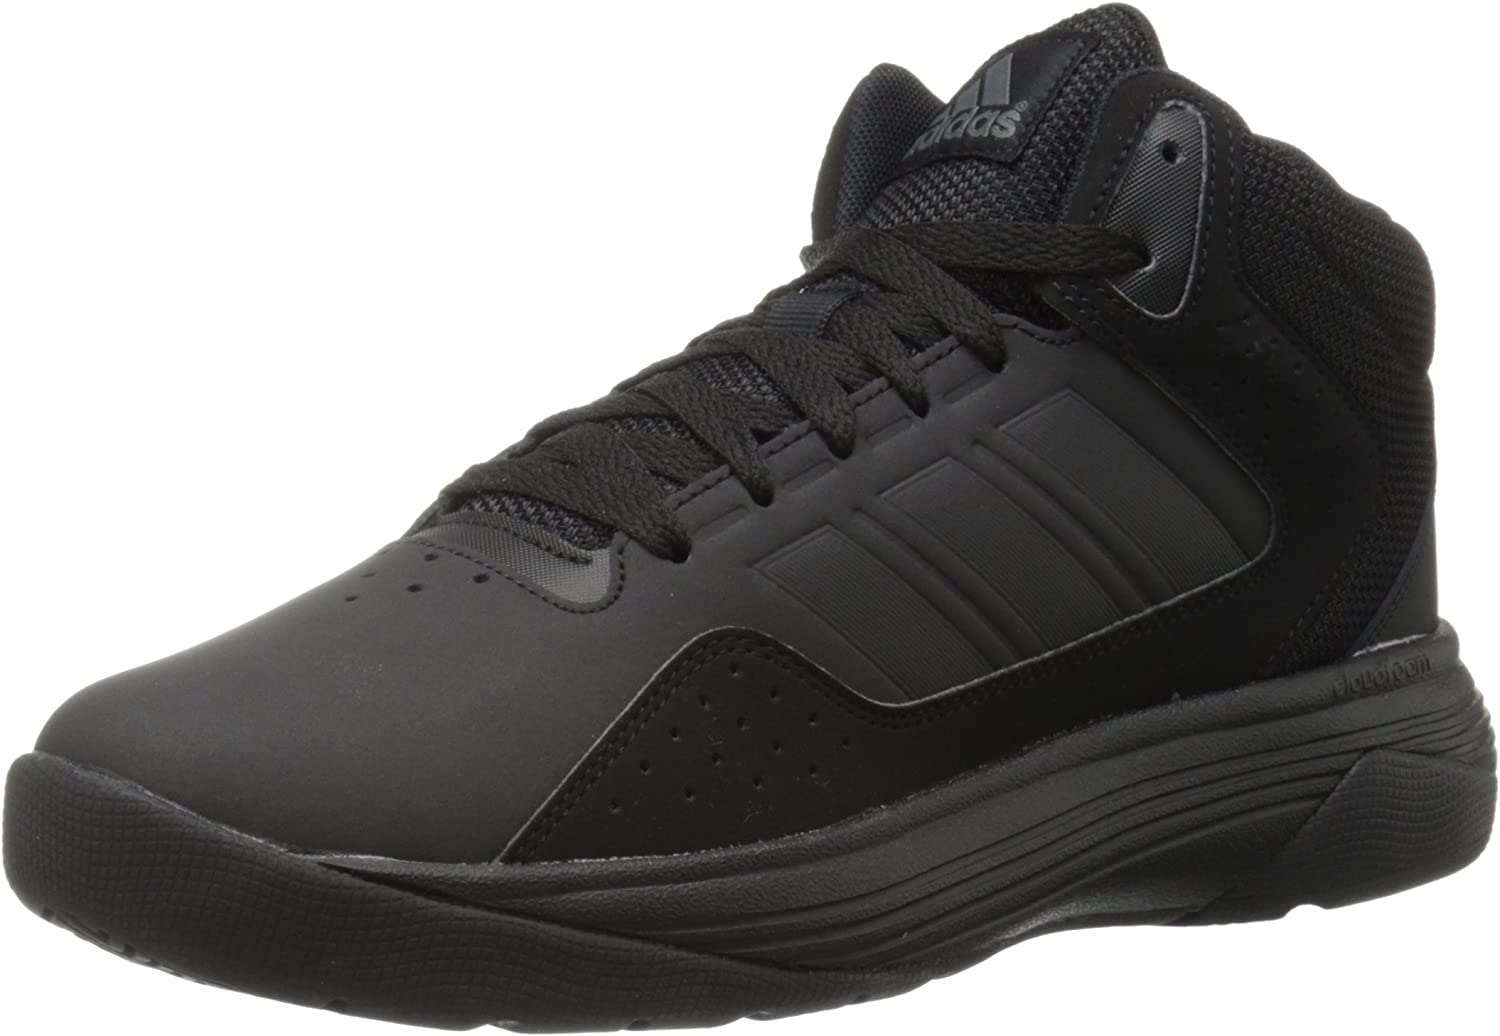 Adidas Neo Shoes Sports Direct Red Black Men Appealing